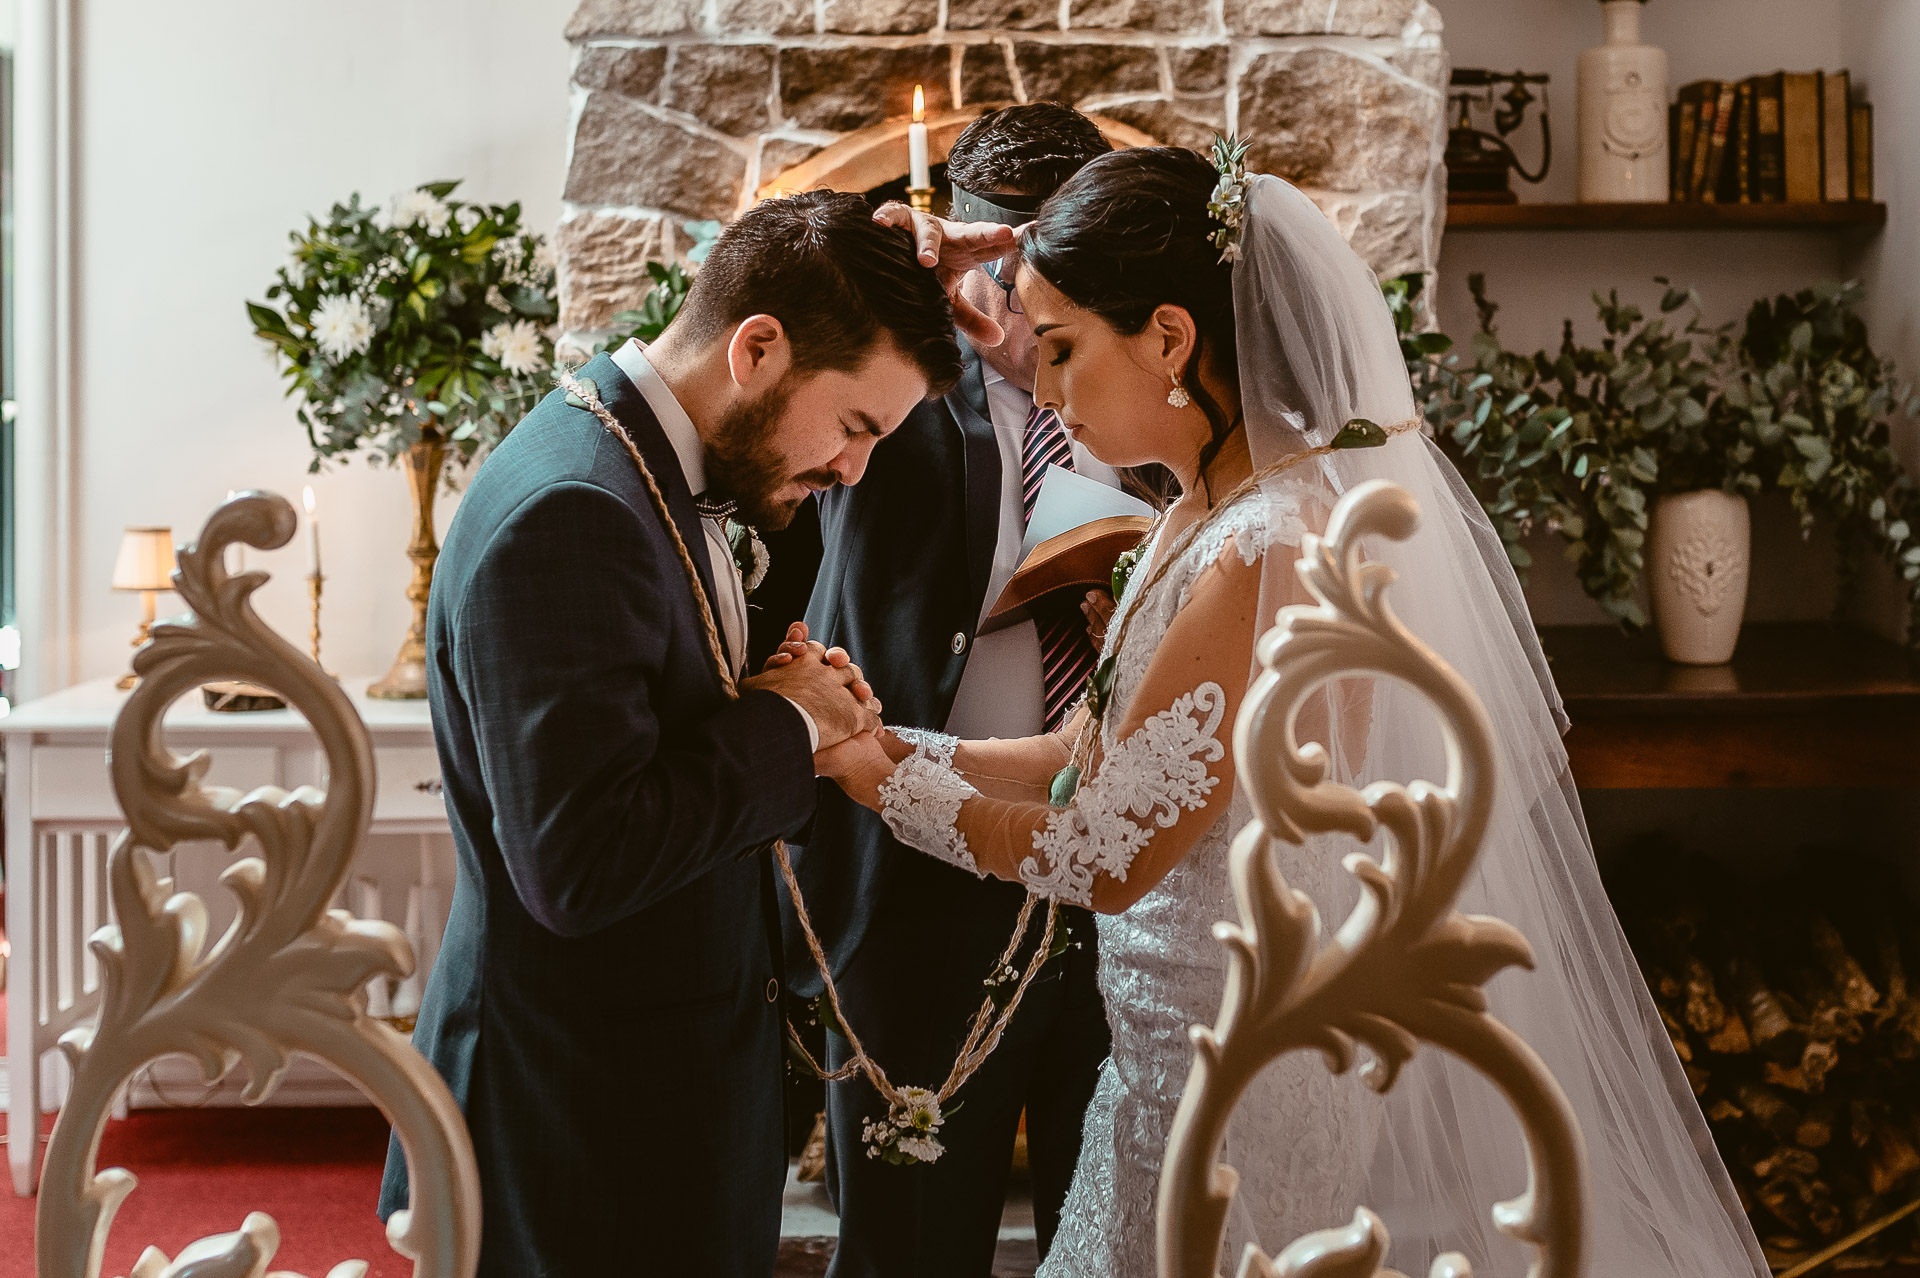 Costa Rica Wedding Photographer | The moment in which the wedding officiant prays a